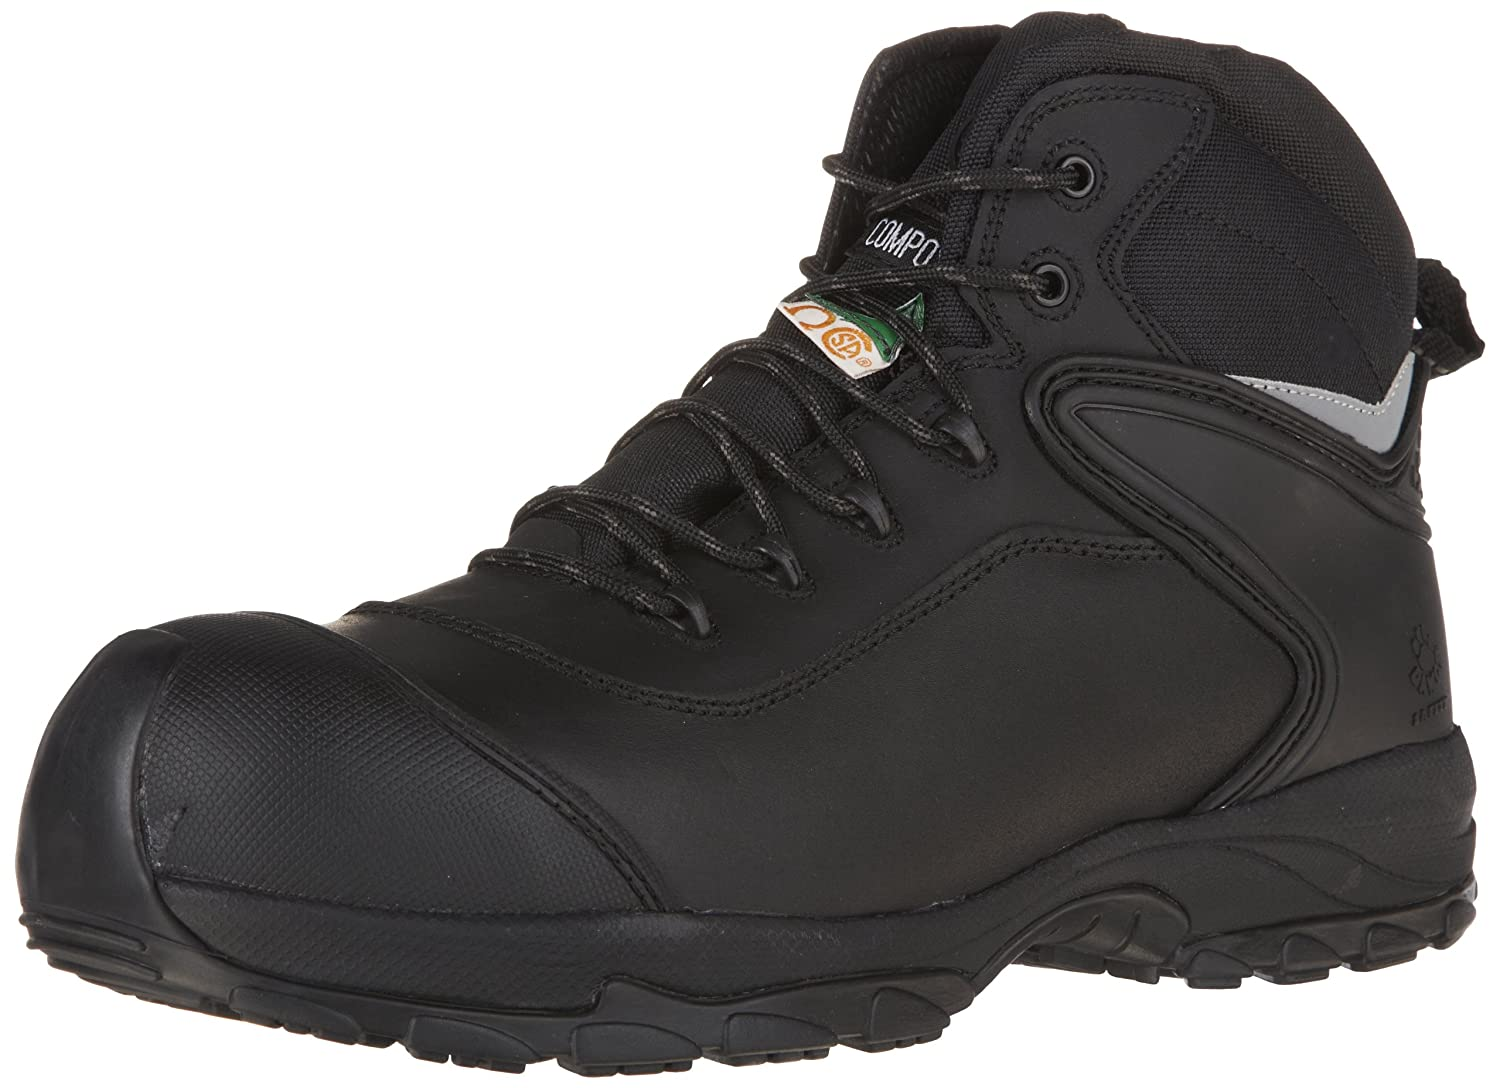 1863013f183 Dawgs Men's 6-inch Ultralite Comfort Pro Safety Boots